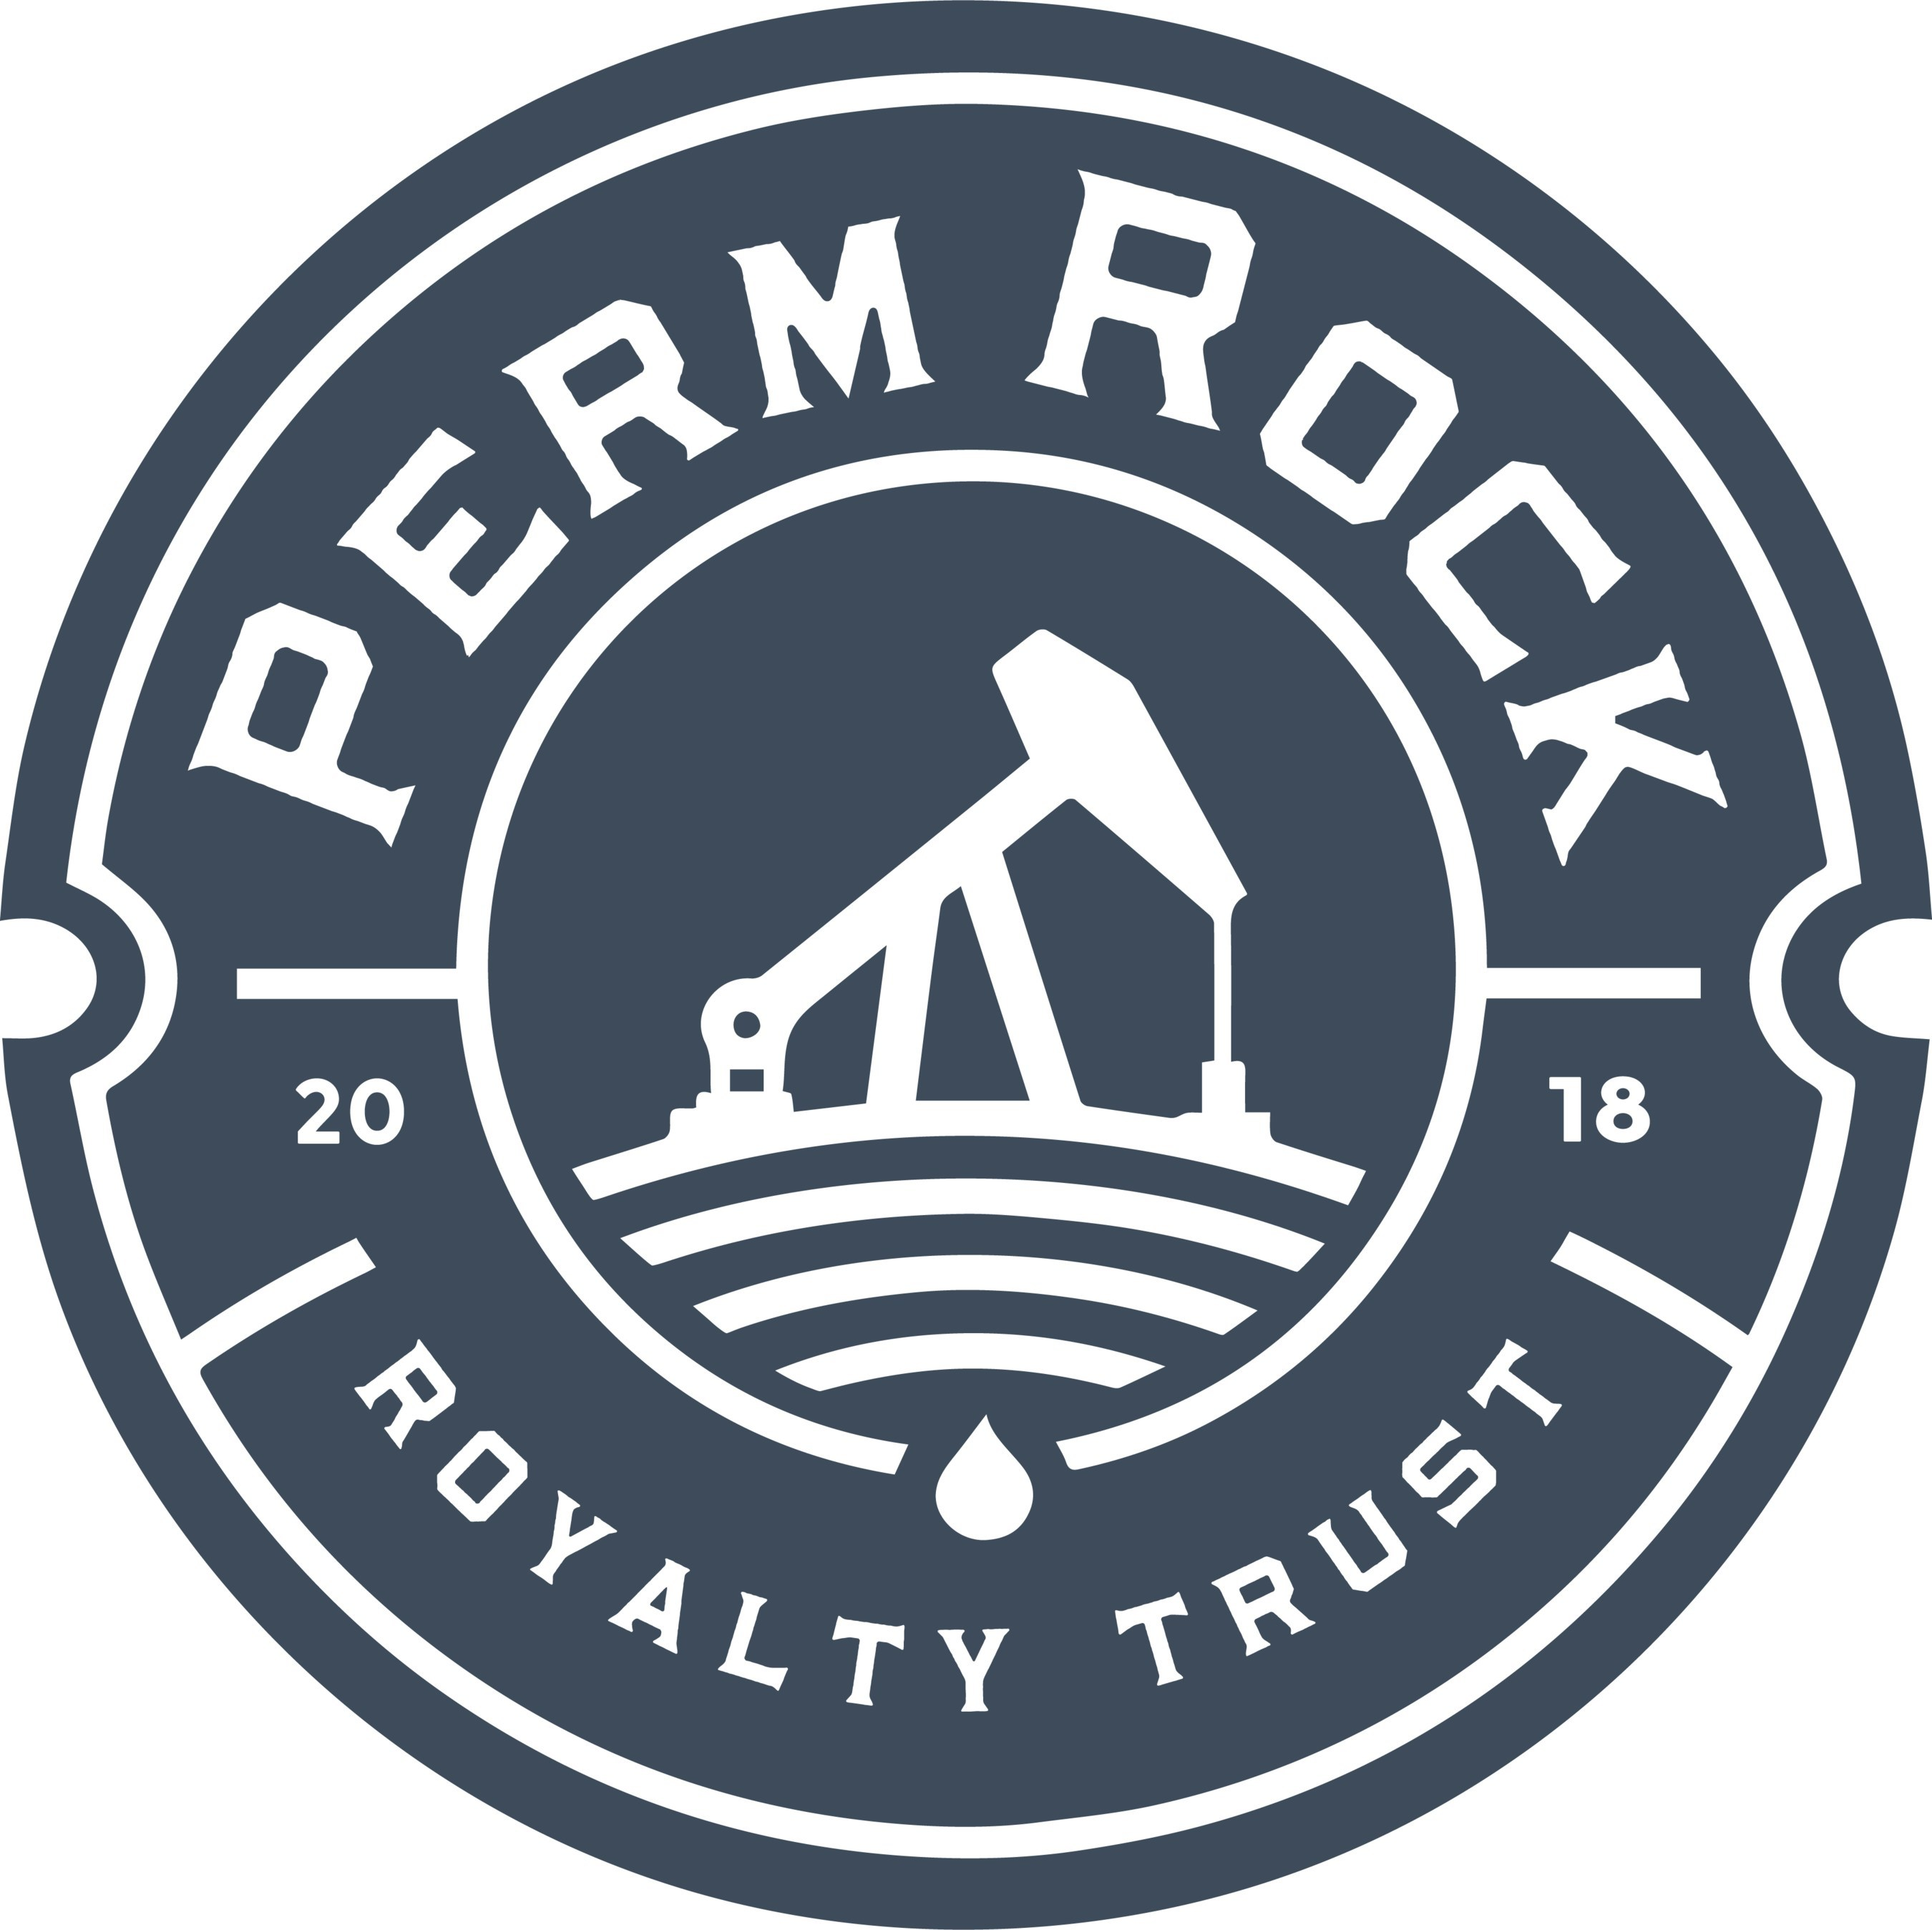 PermRock Royalty Trust Declares Monthly Cash Distribution